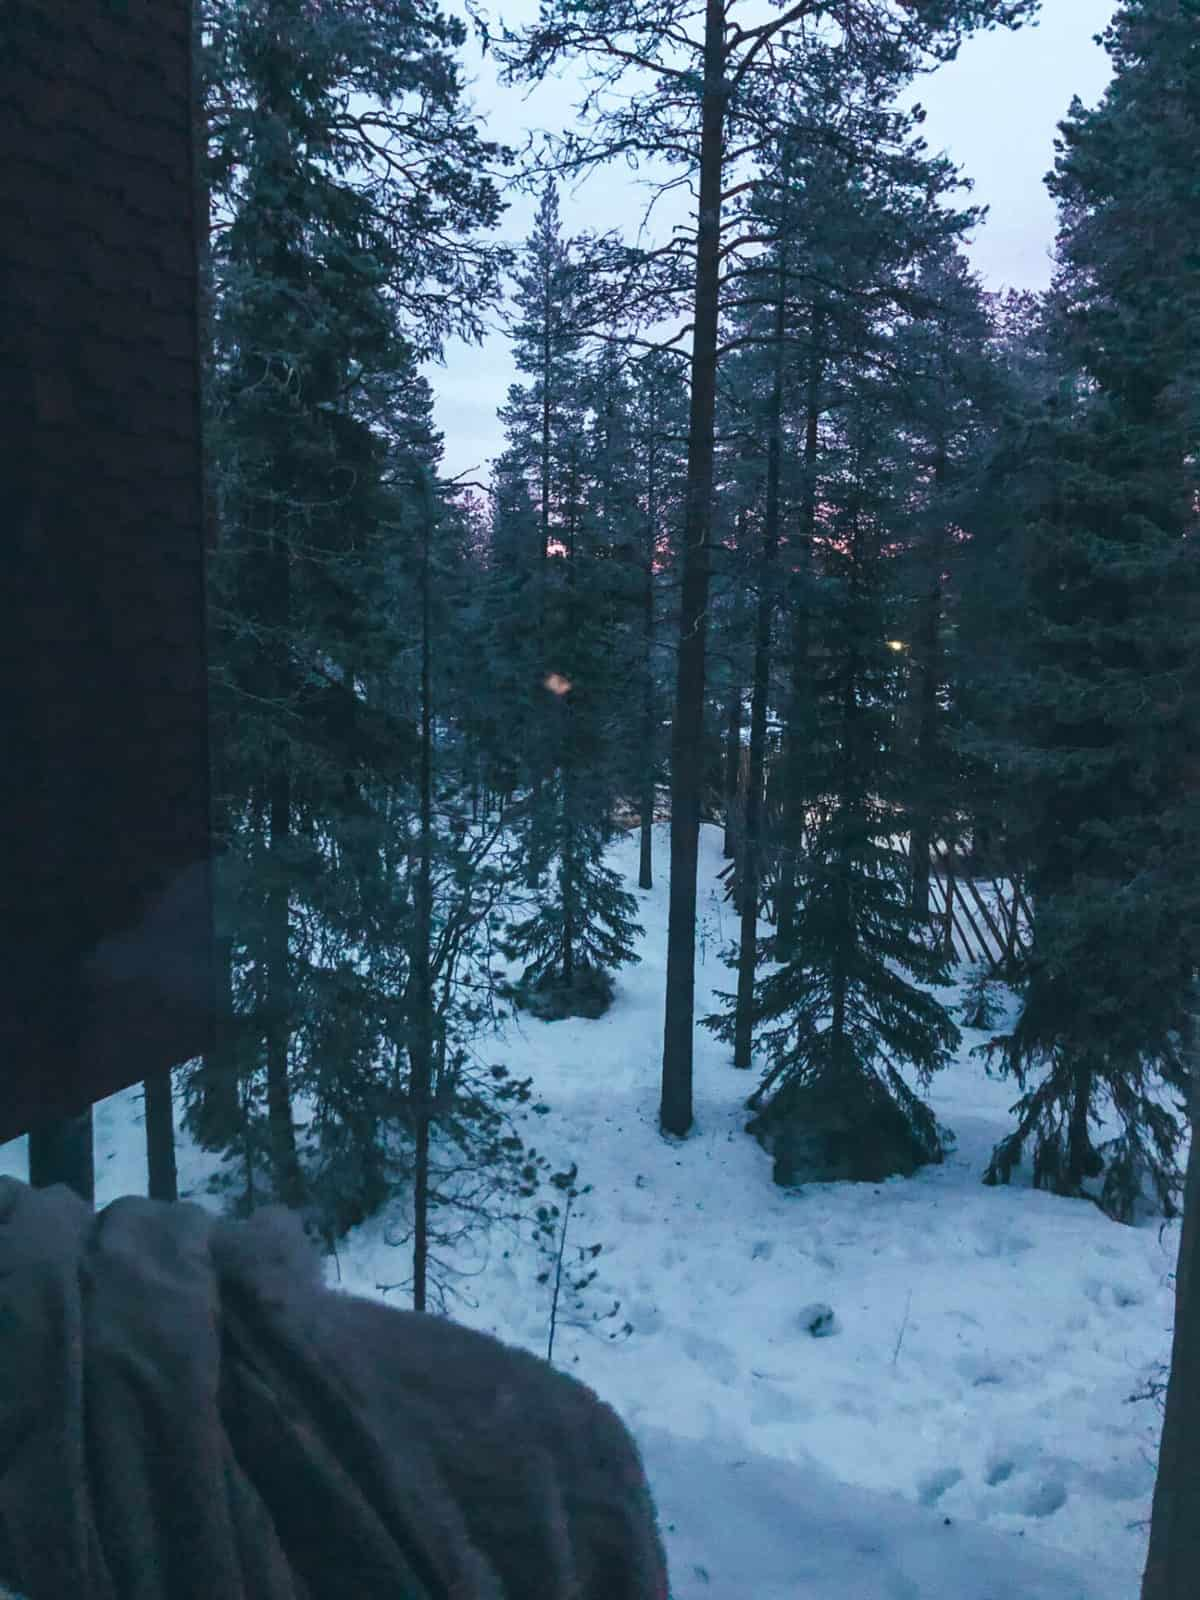 The edge of a bed looking out on to a snowy forest